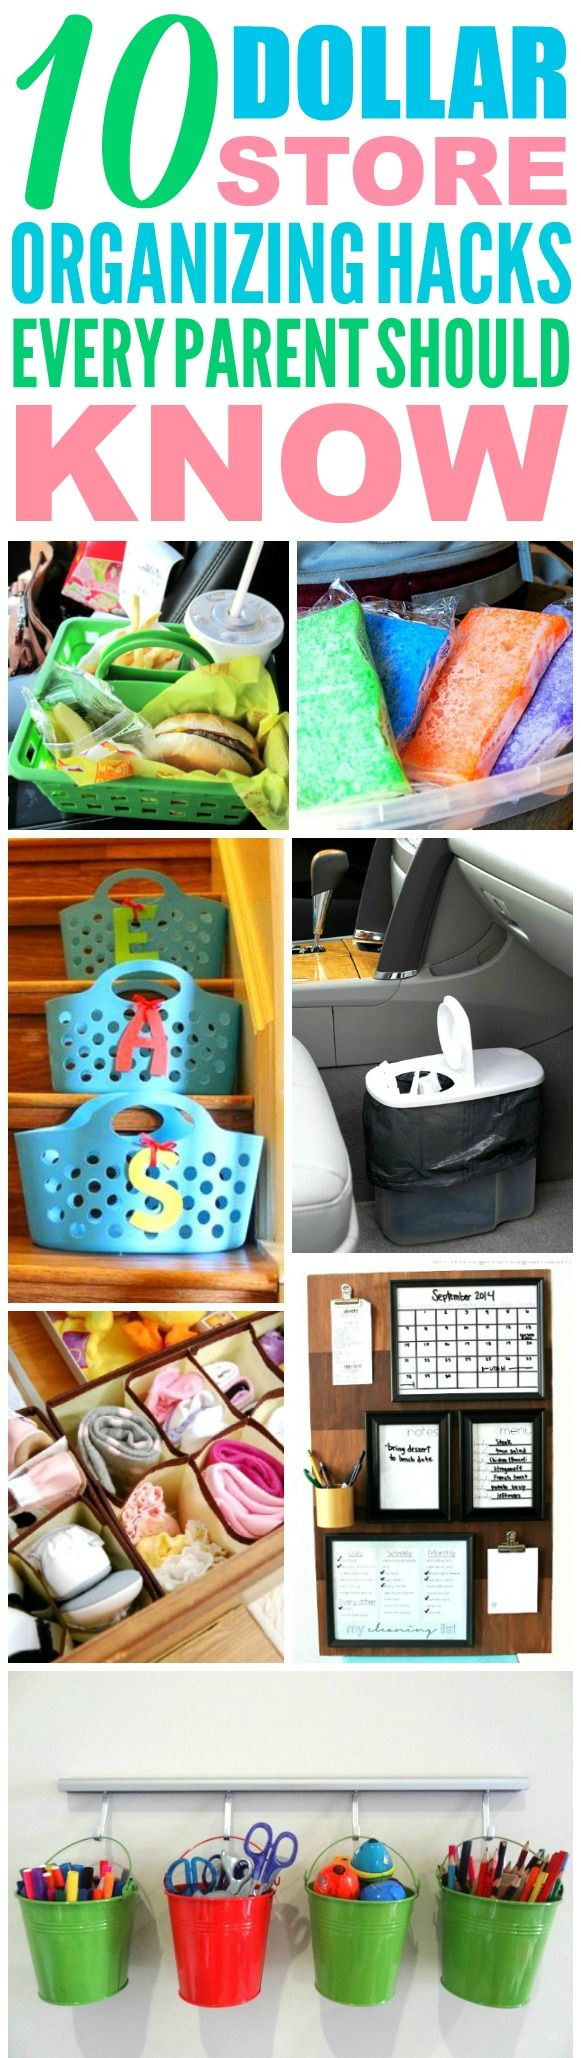 These 10 Dollar Store Organization hacks are the best! Now I have a great way to keep my home clean as a parent! I love organization hacks for kids! Definitely pinning!